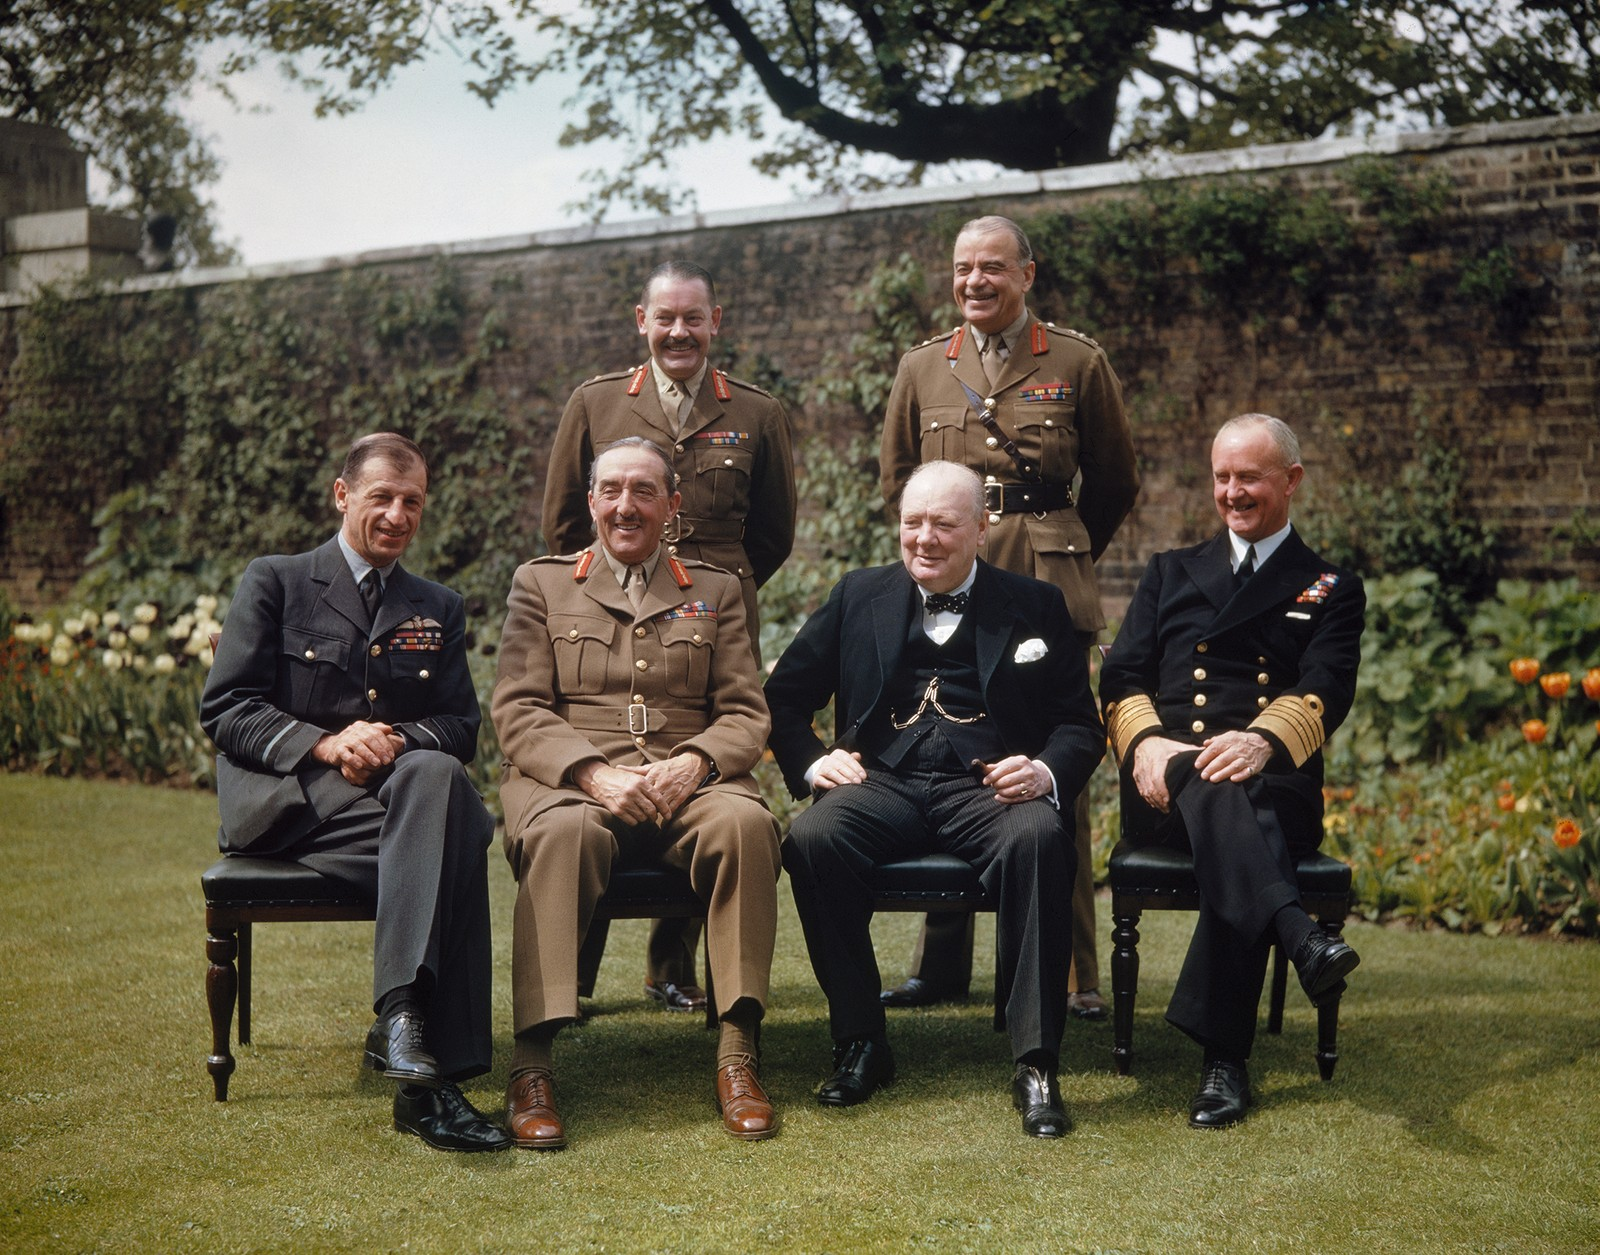 Foran fra venstre: Air Chief Marshal Sir Charles Portal; Field Marshal Sir Alan Brooke, the Rt Hon Winston Churchill; Admiral Sir Andrew Cunningham. Bak fra venstre: the Secretary to the Chiefs of Staffs Committee, Major General L C Hollis; and the Chief of Staff to the Minister of Defence, General Sir Hastings Ismay